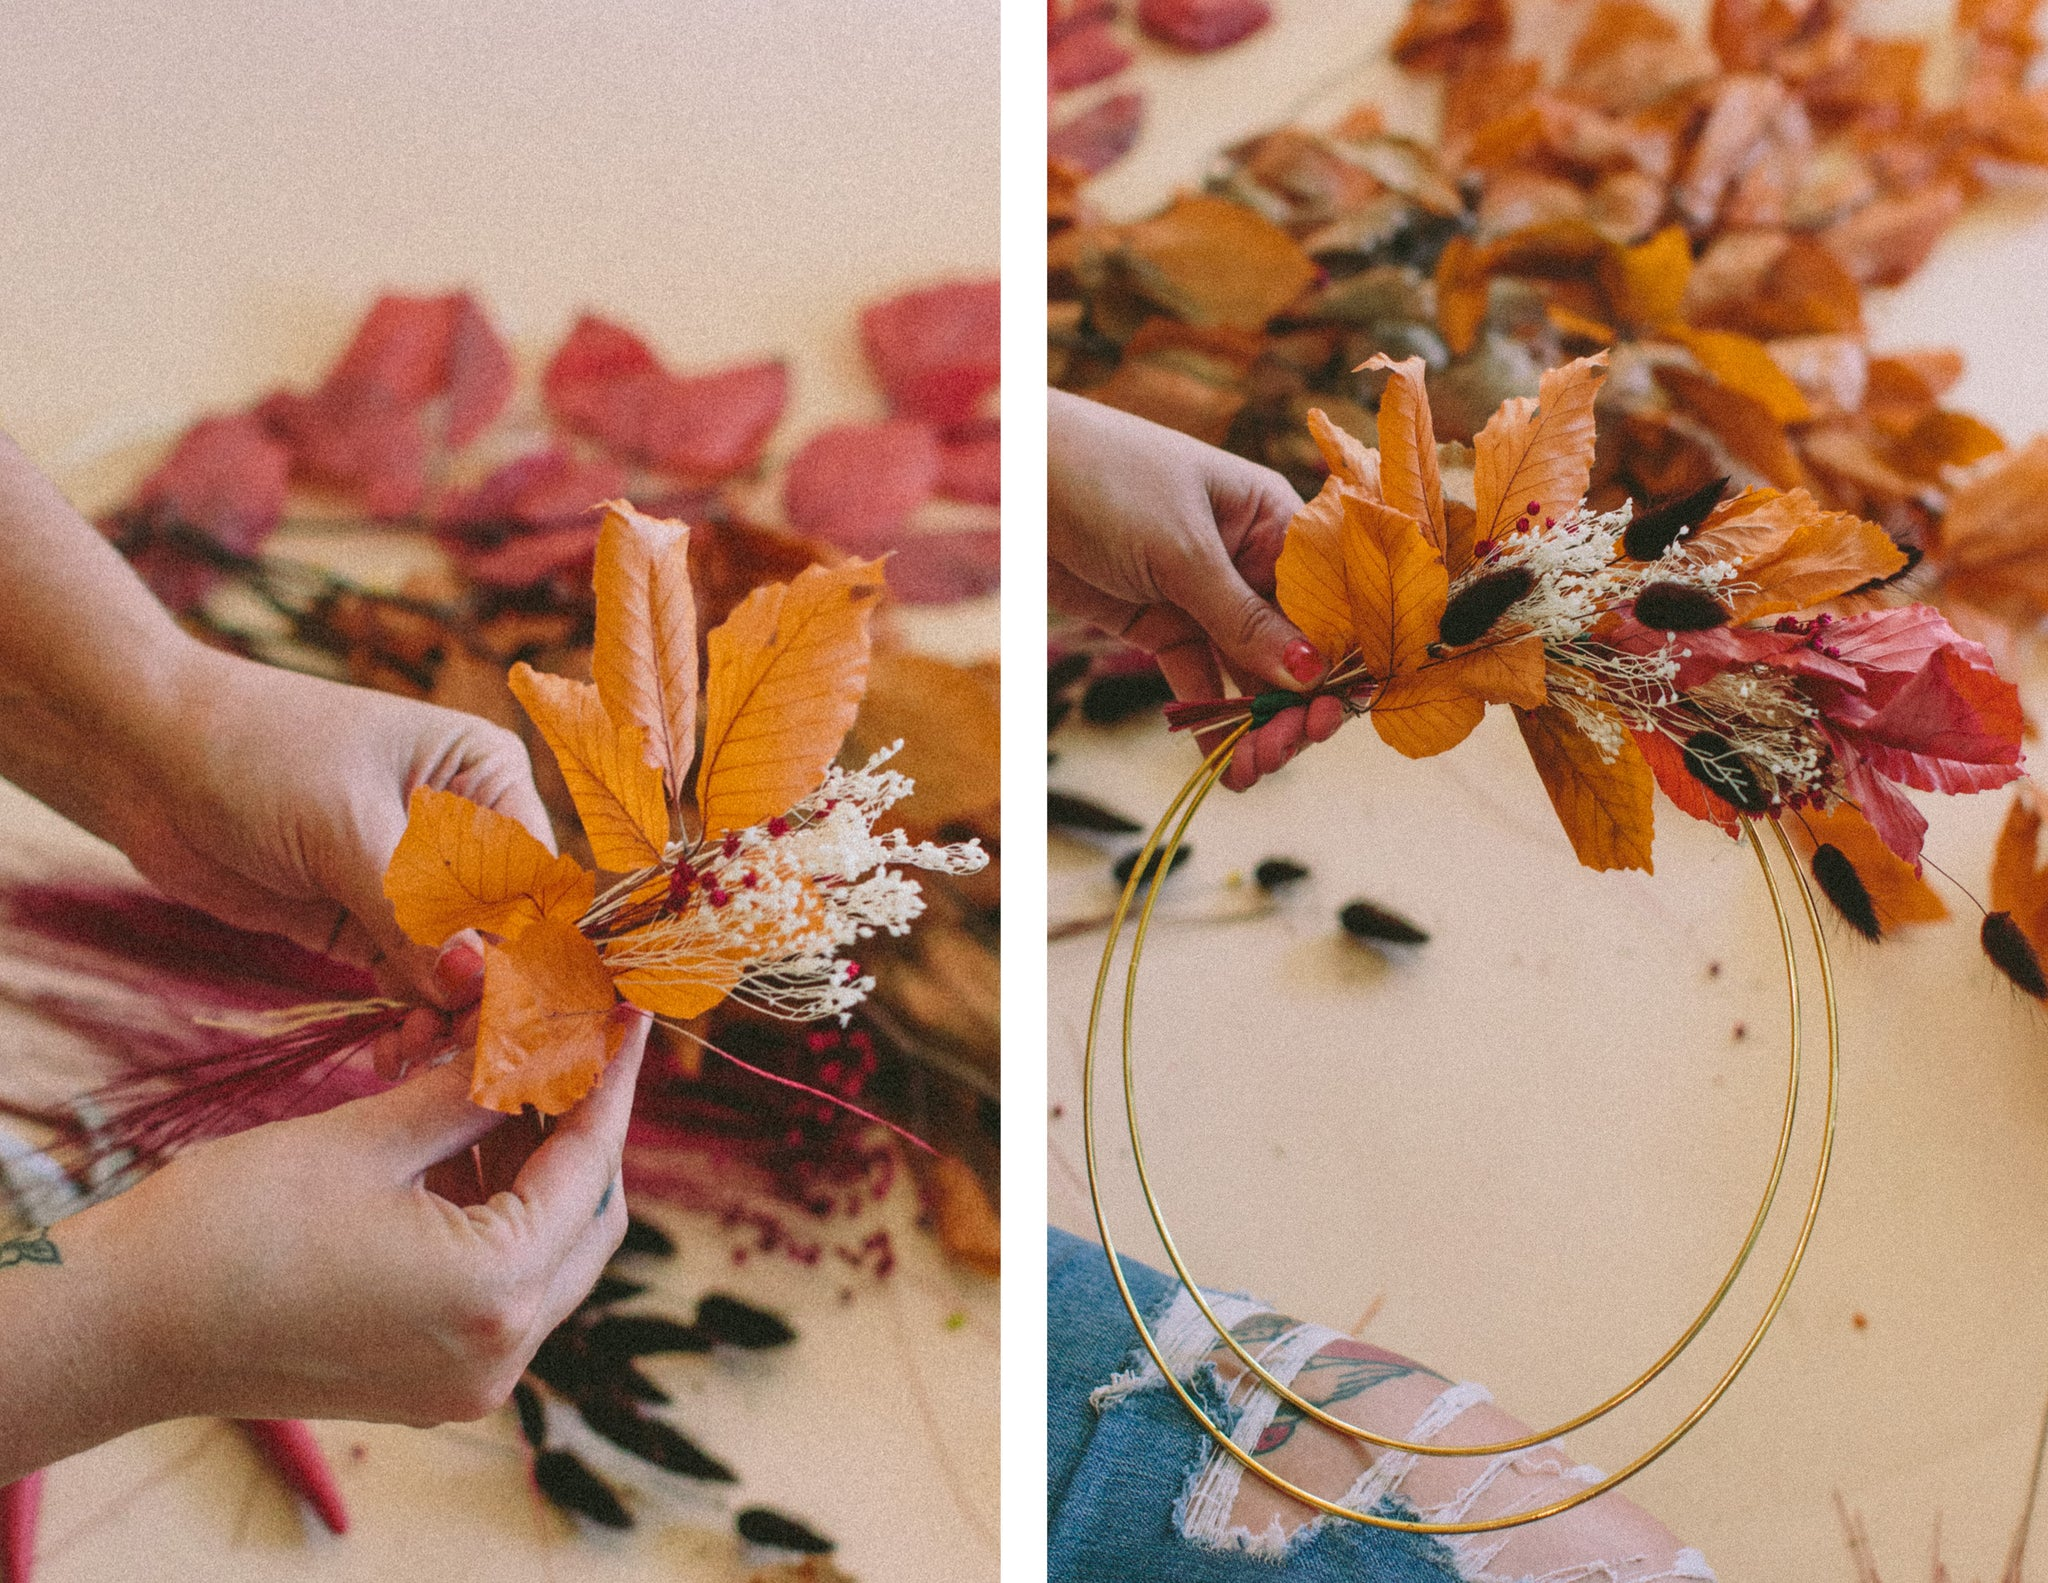 Wildflora Gold Ring Wreath with fall Foliage Tutorial  photo by © Valerie Noell 2019